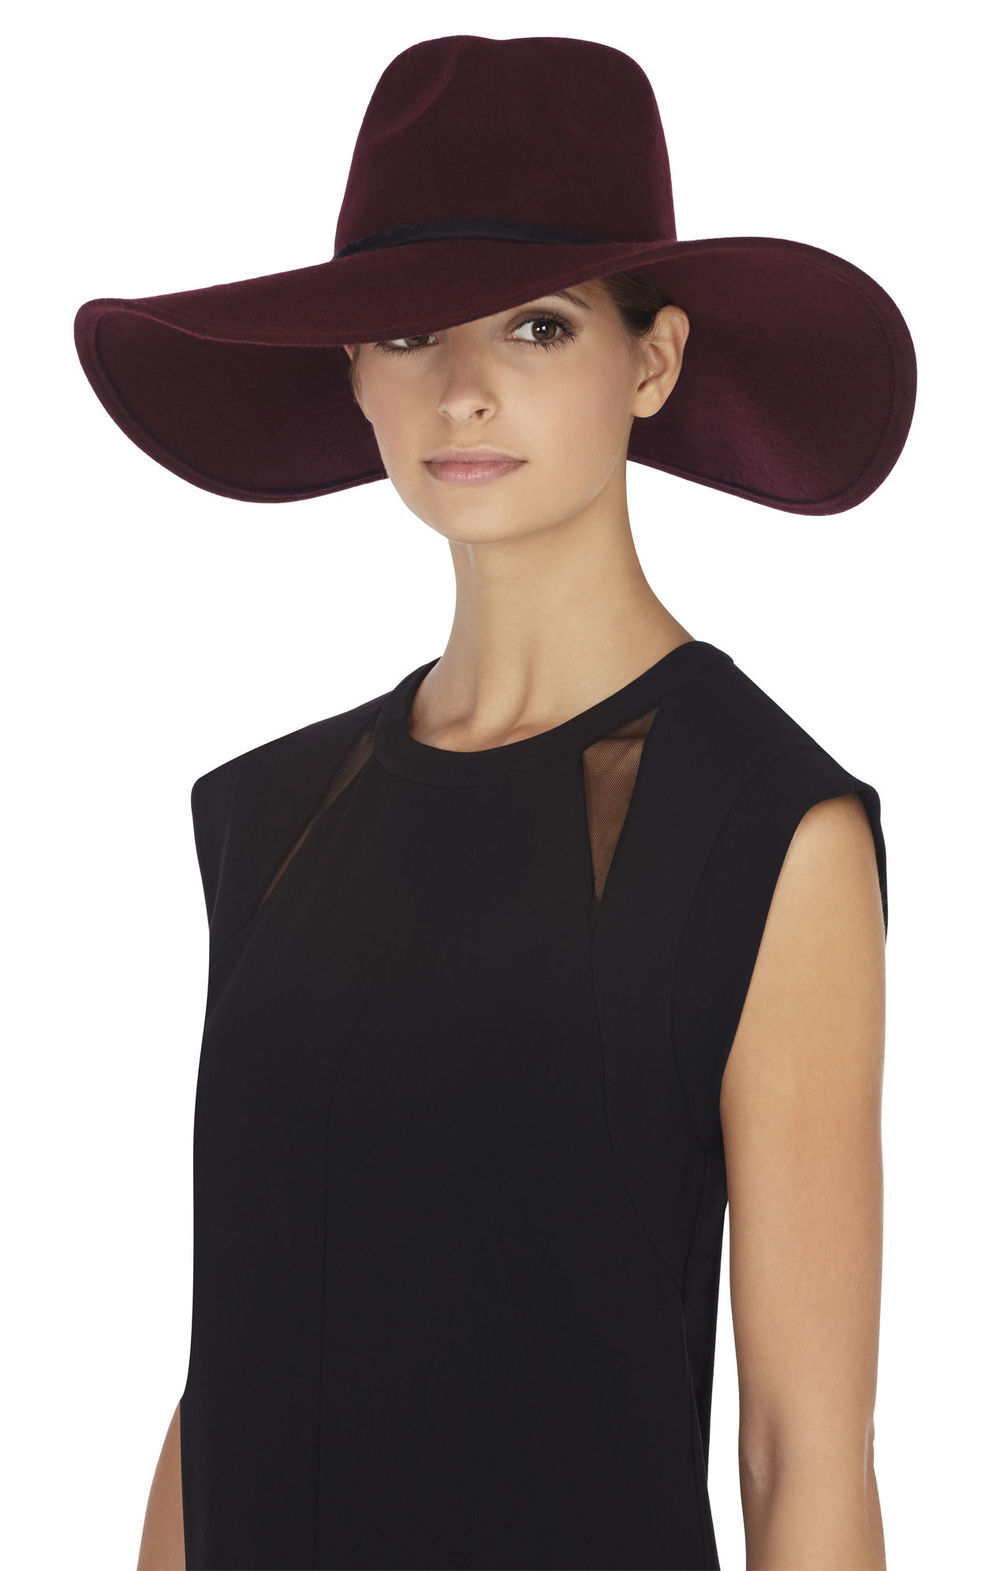 BCBG Butterfly Floppy Wool Hat, $88